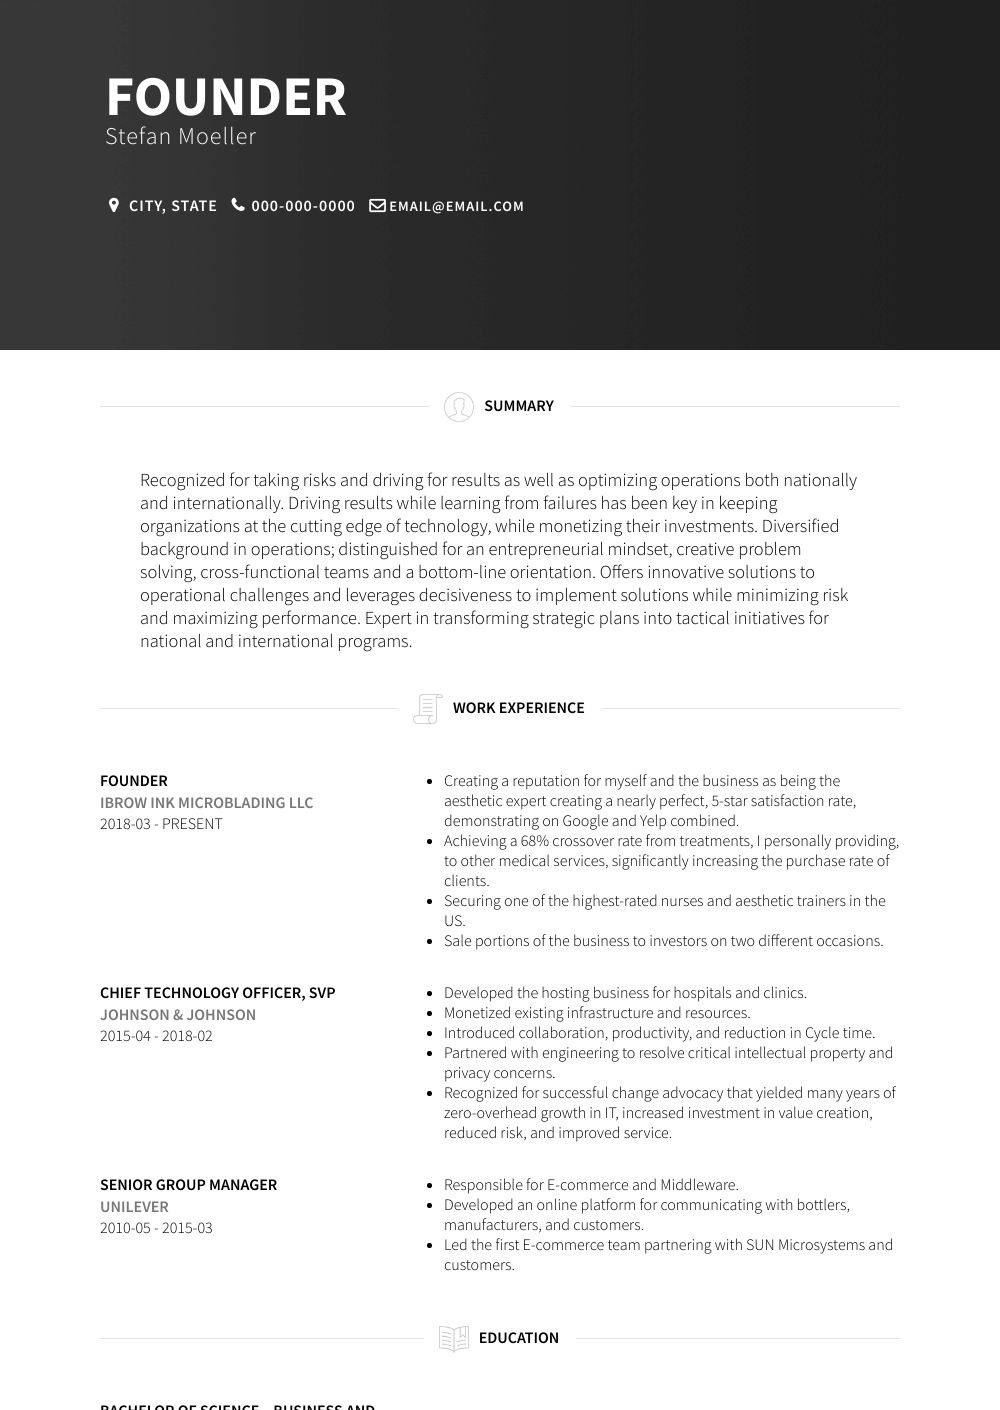 Founder Resume Sample and Template